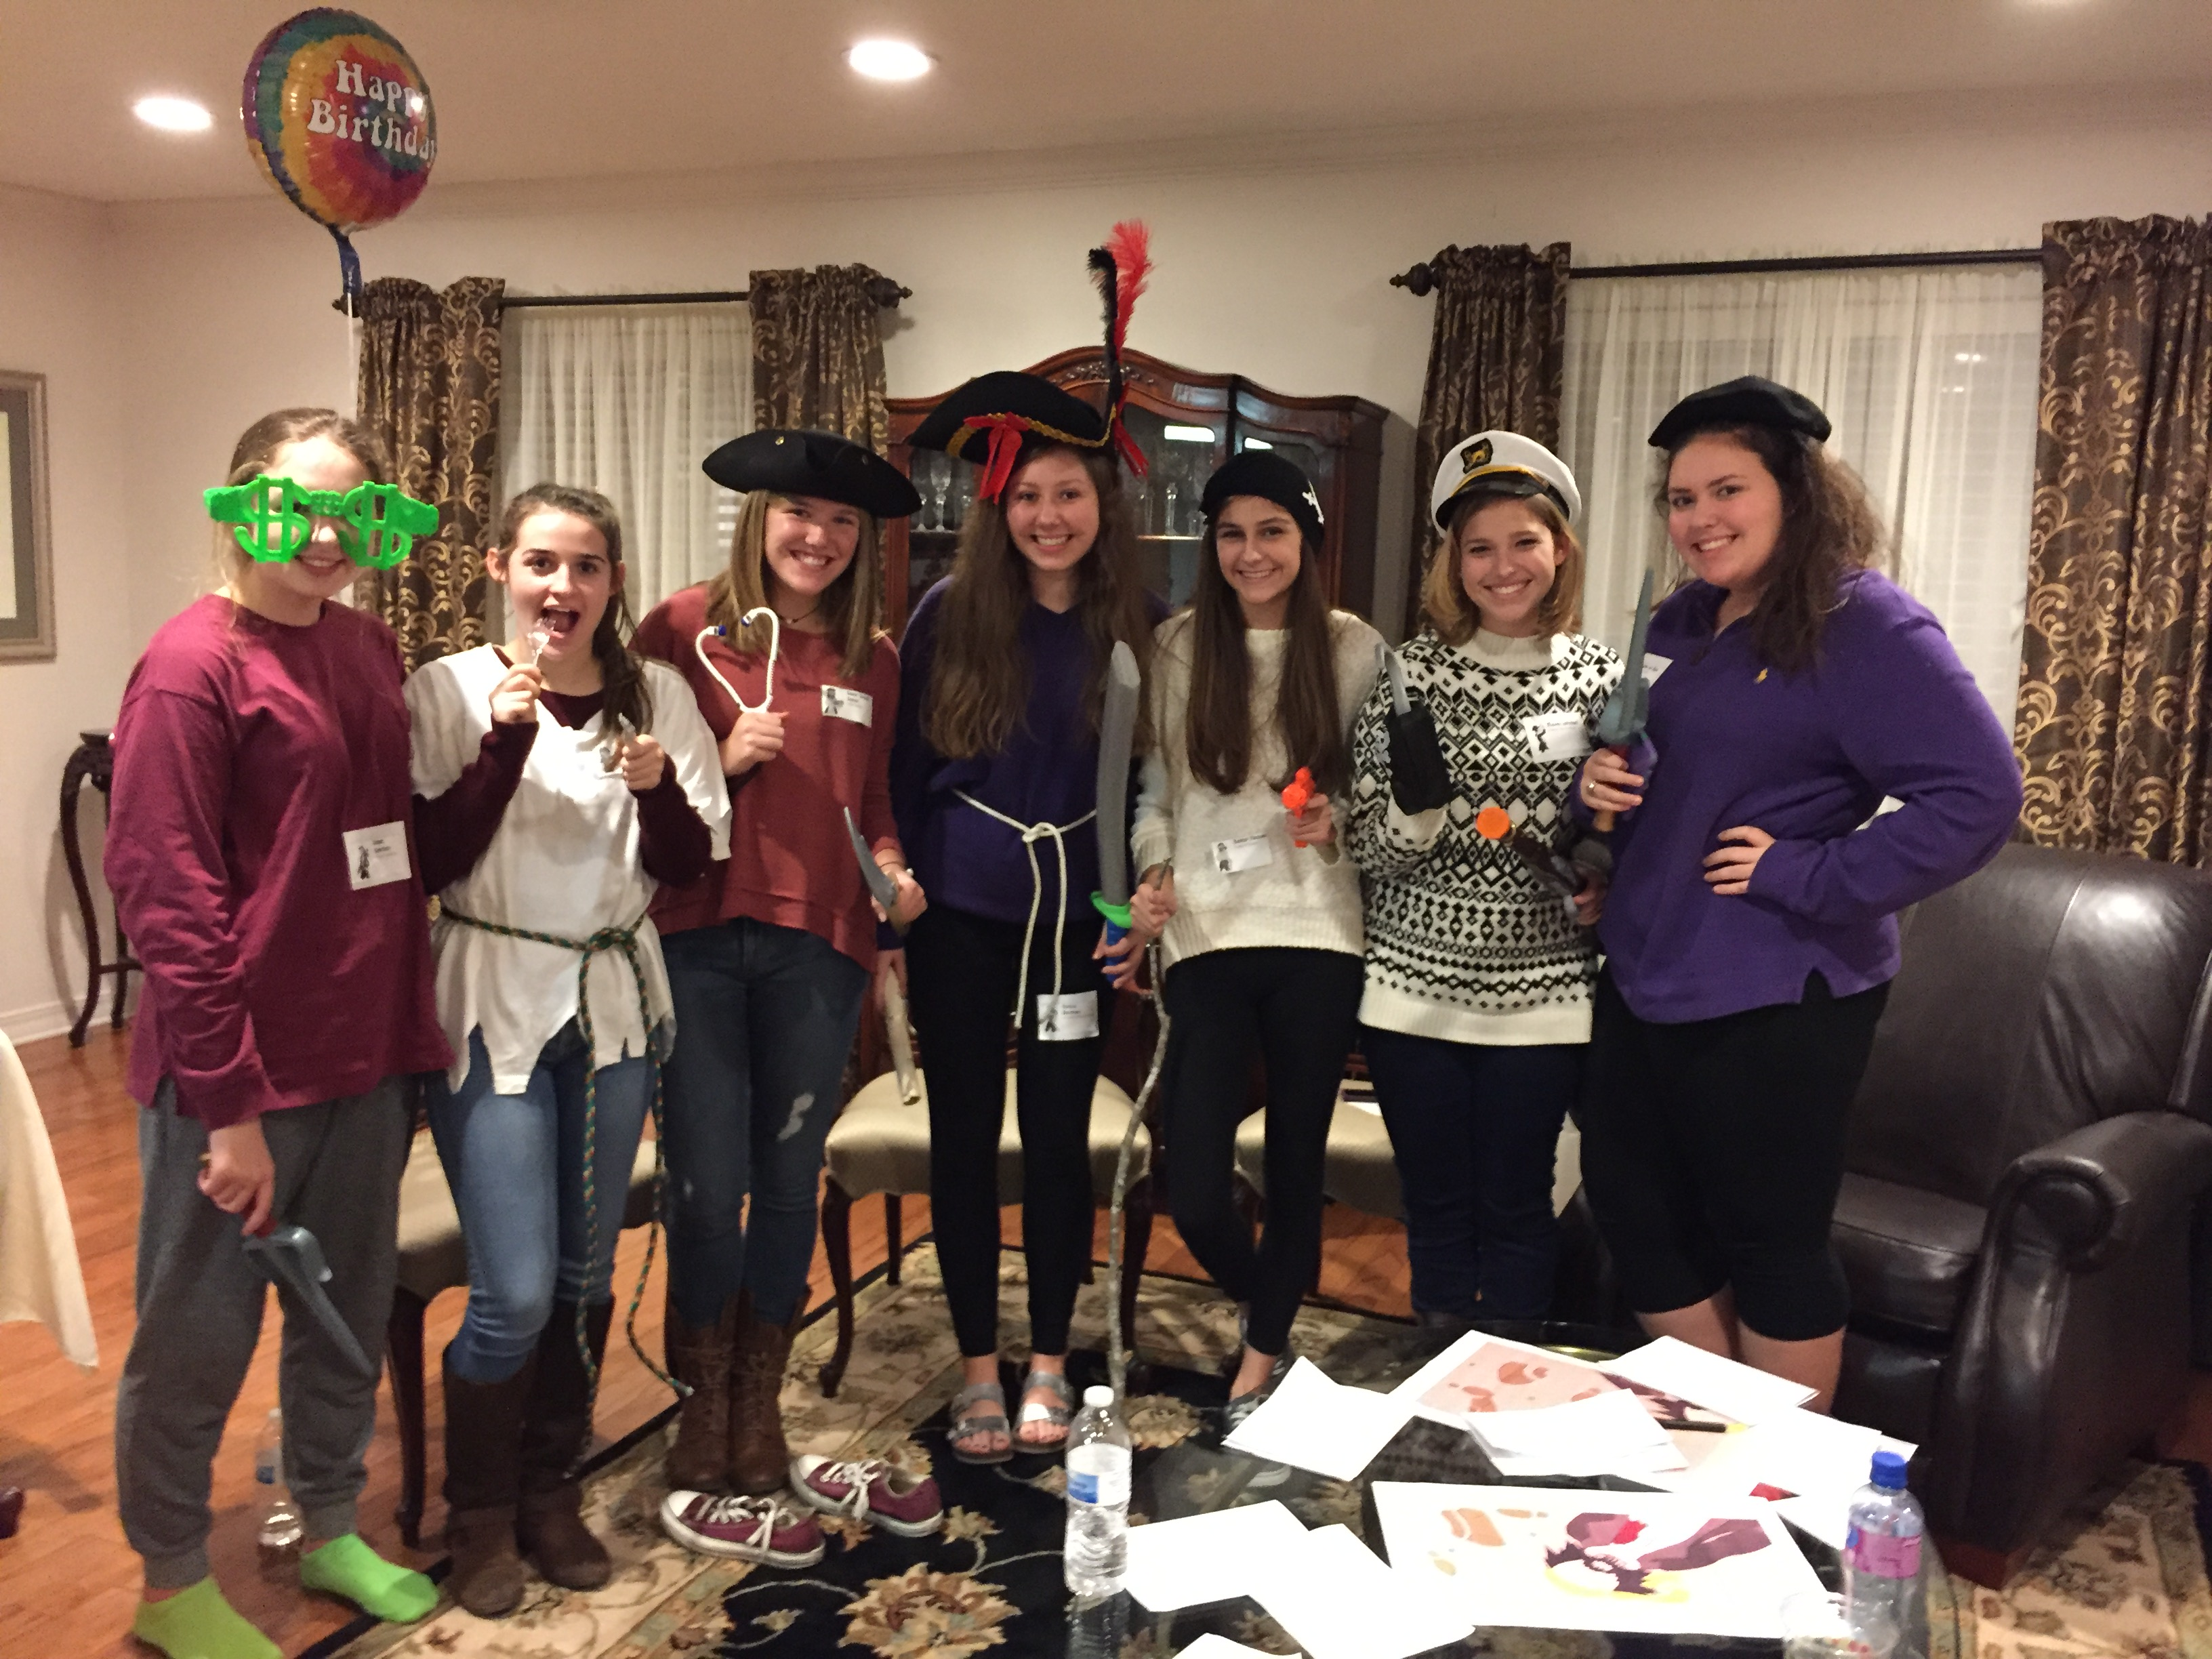 Pirate-themed murder mystery teen birthday party